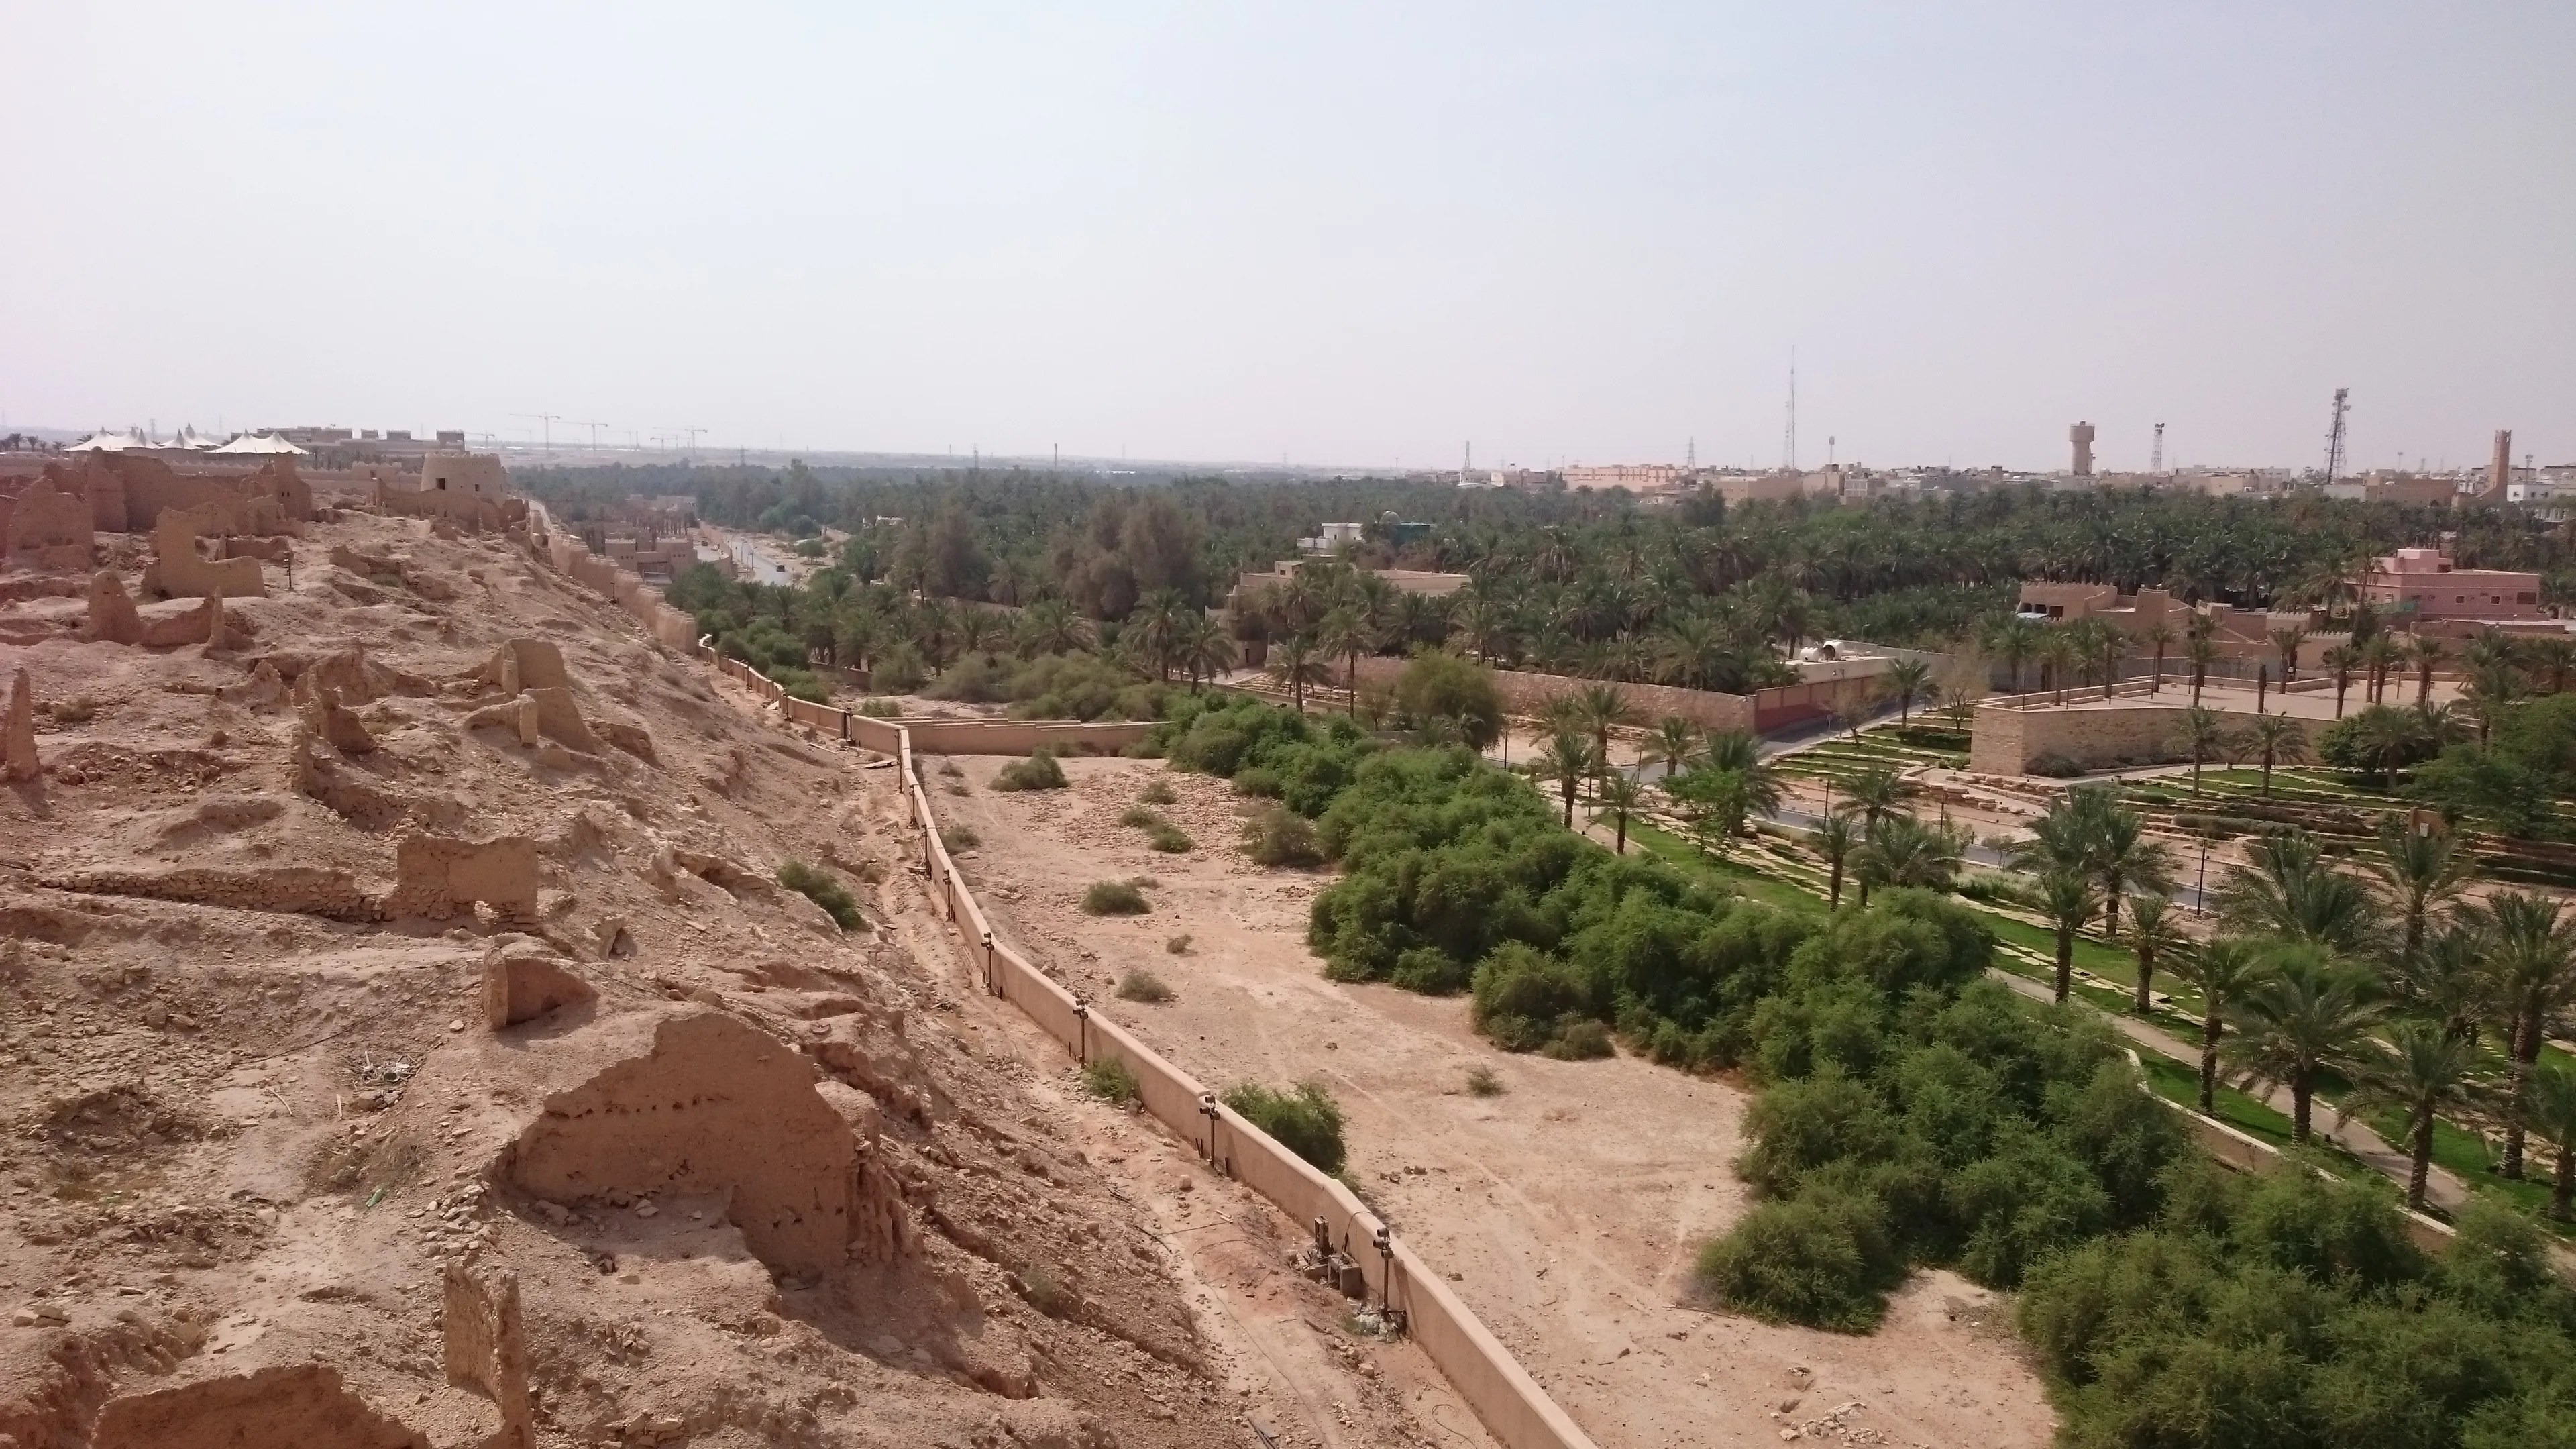 Greenery in the wadi hint at the agricultural origins of Historical Diriyah